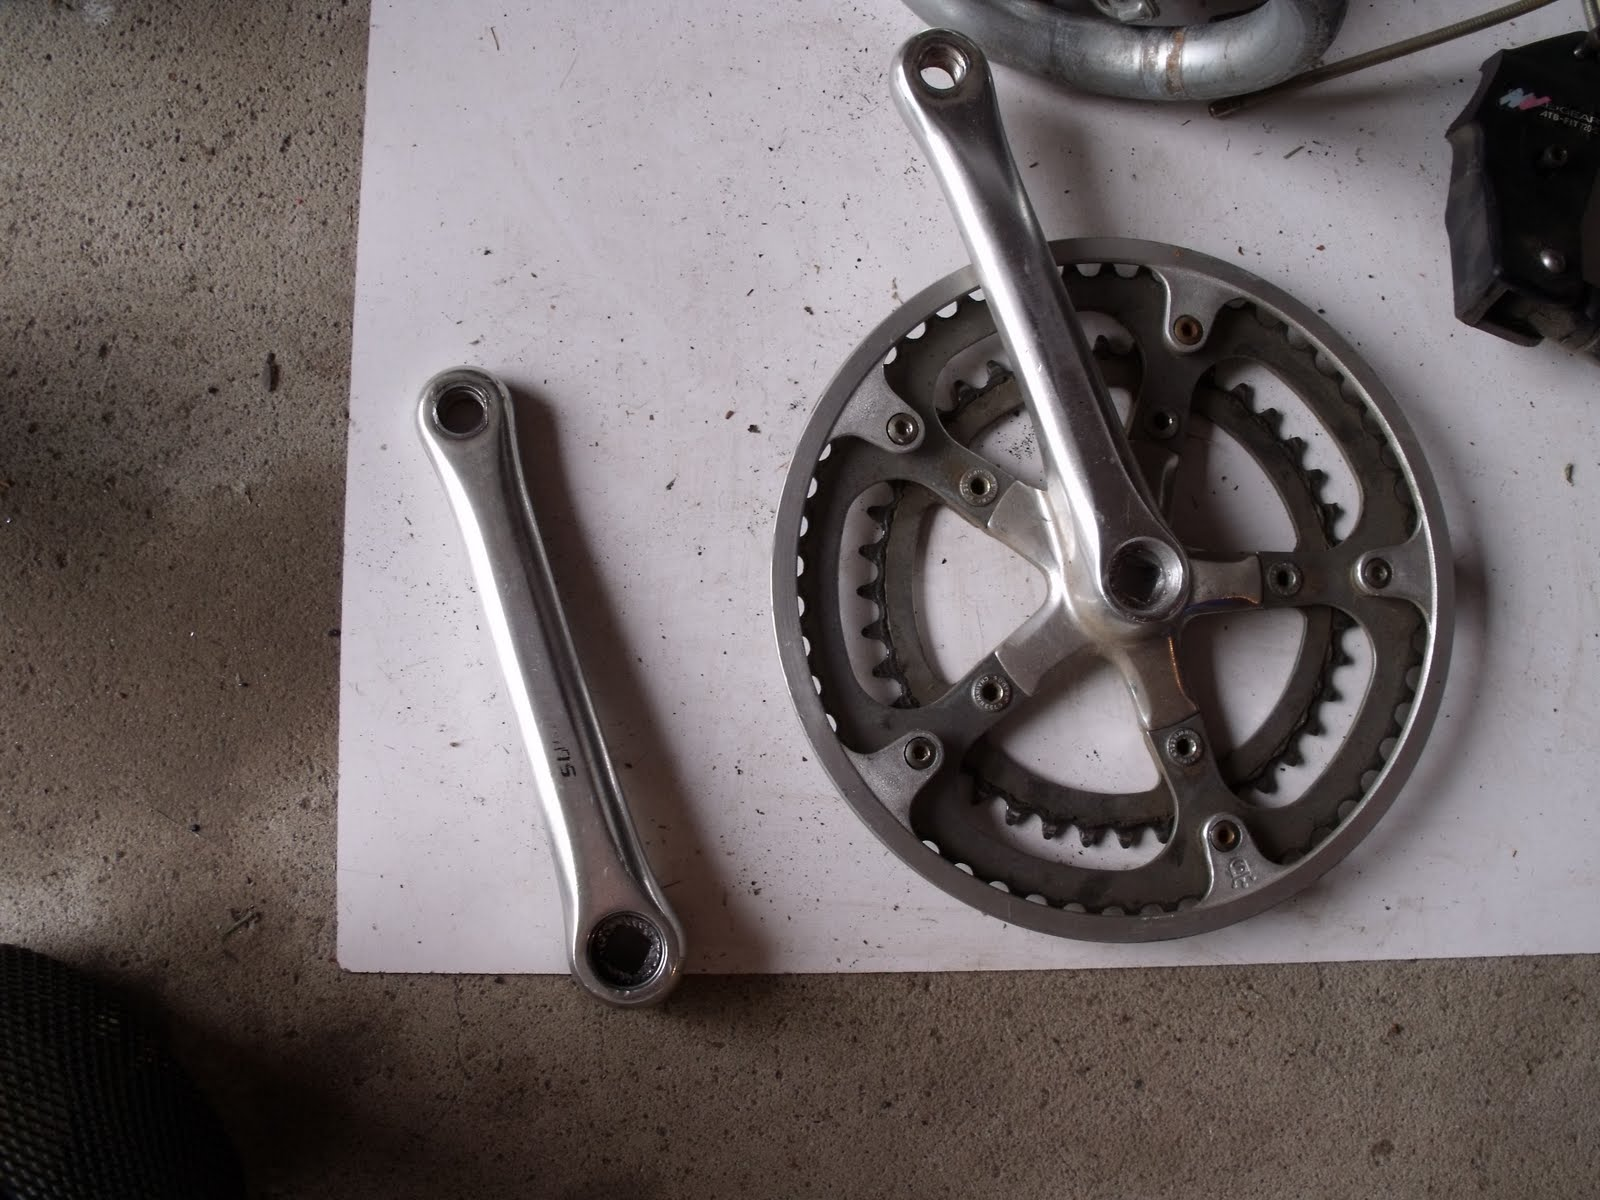 How to remove the connecting rods from a bicycle without a stripper